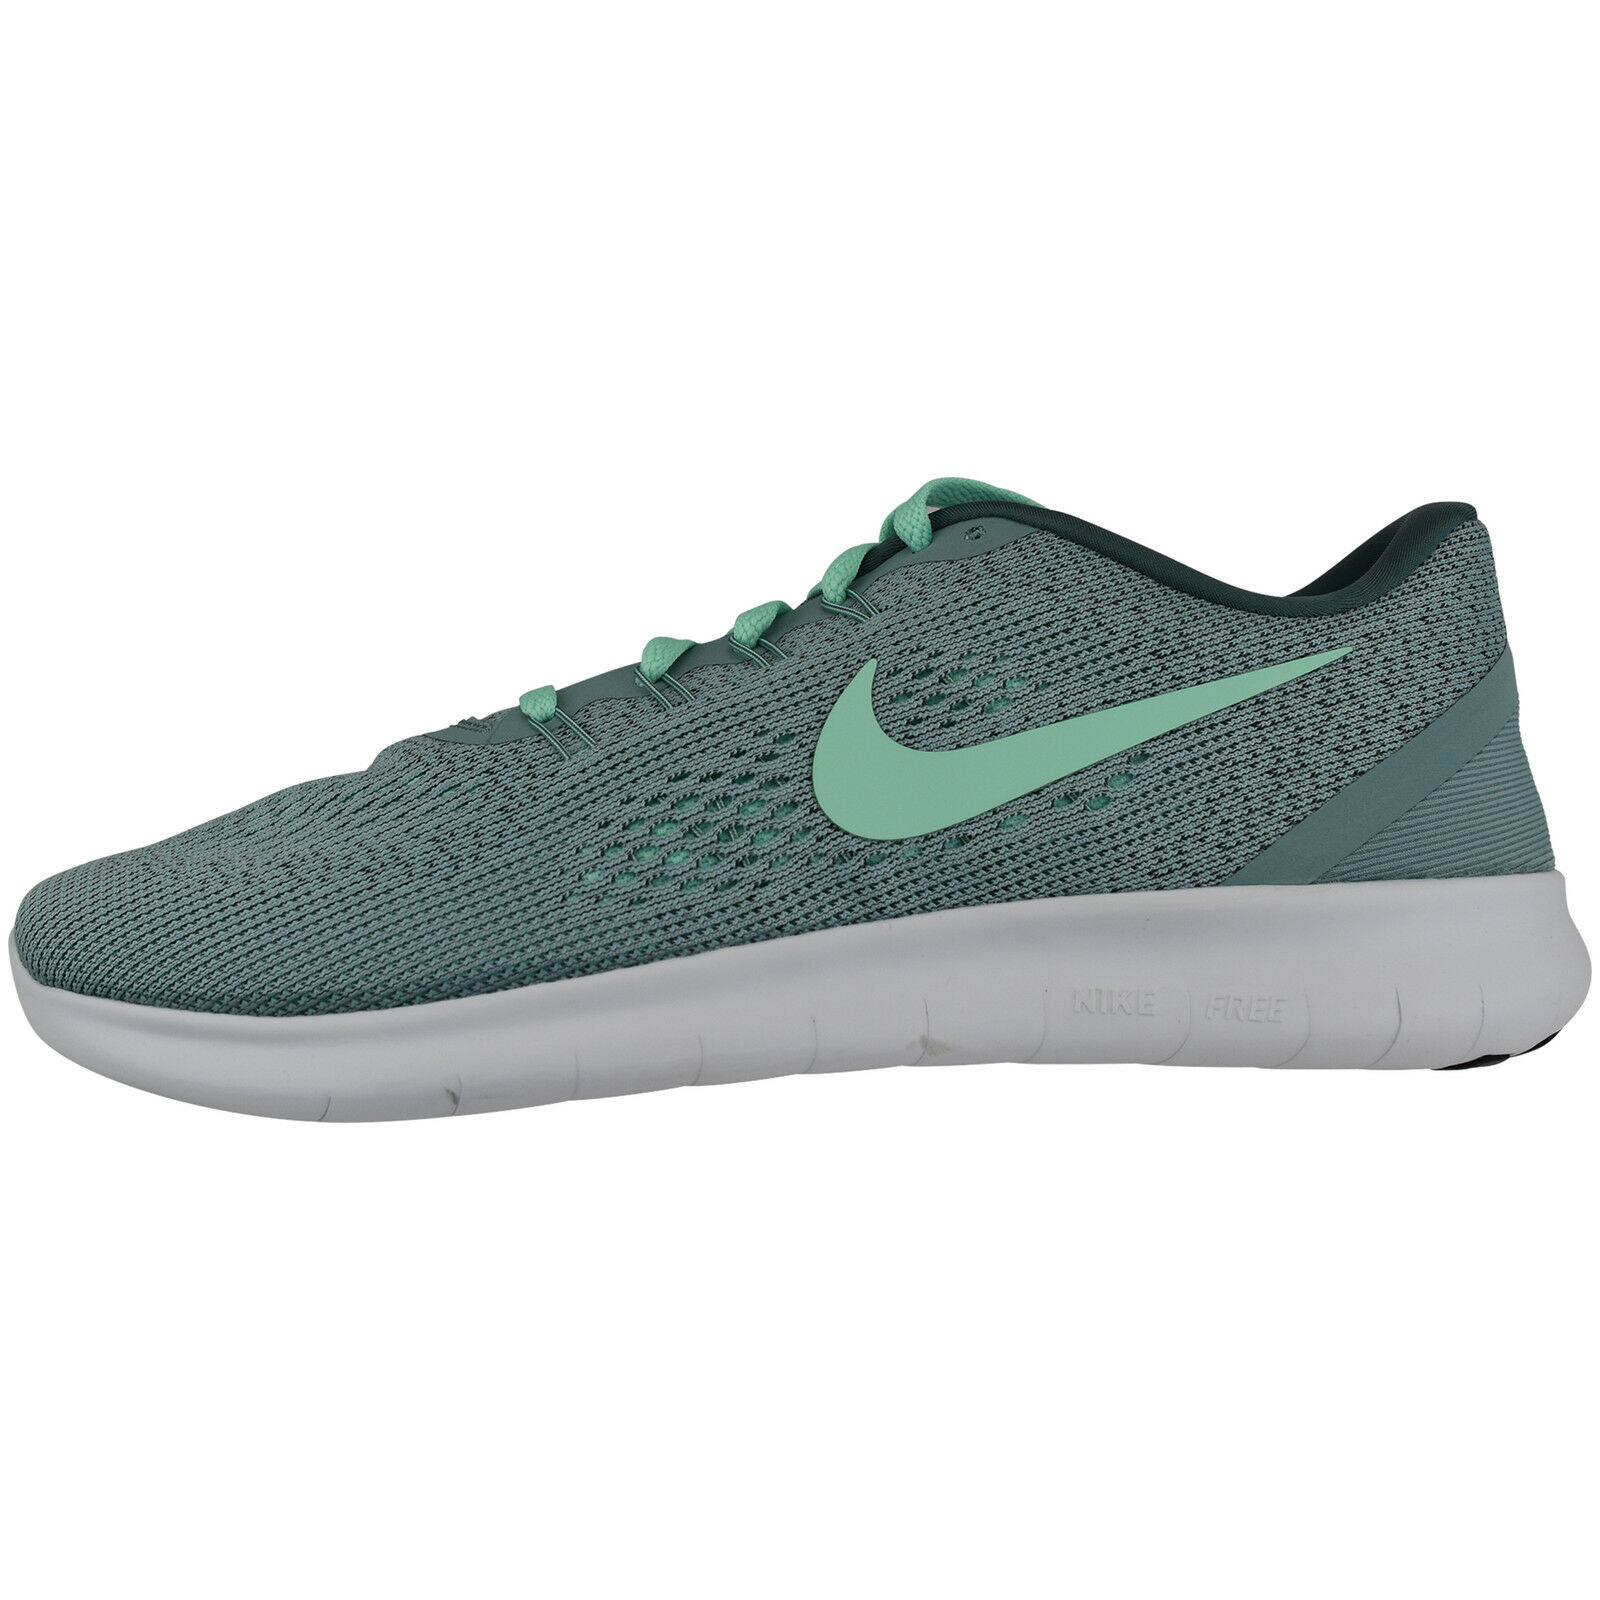 WMNS NIKE FREE RN 831509-004 Lifestyle Running Shoes Casual Trainers